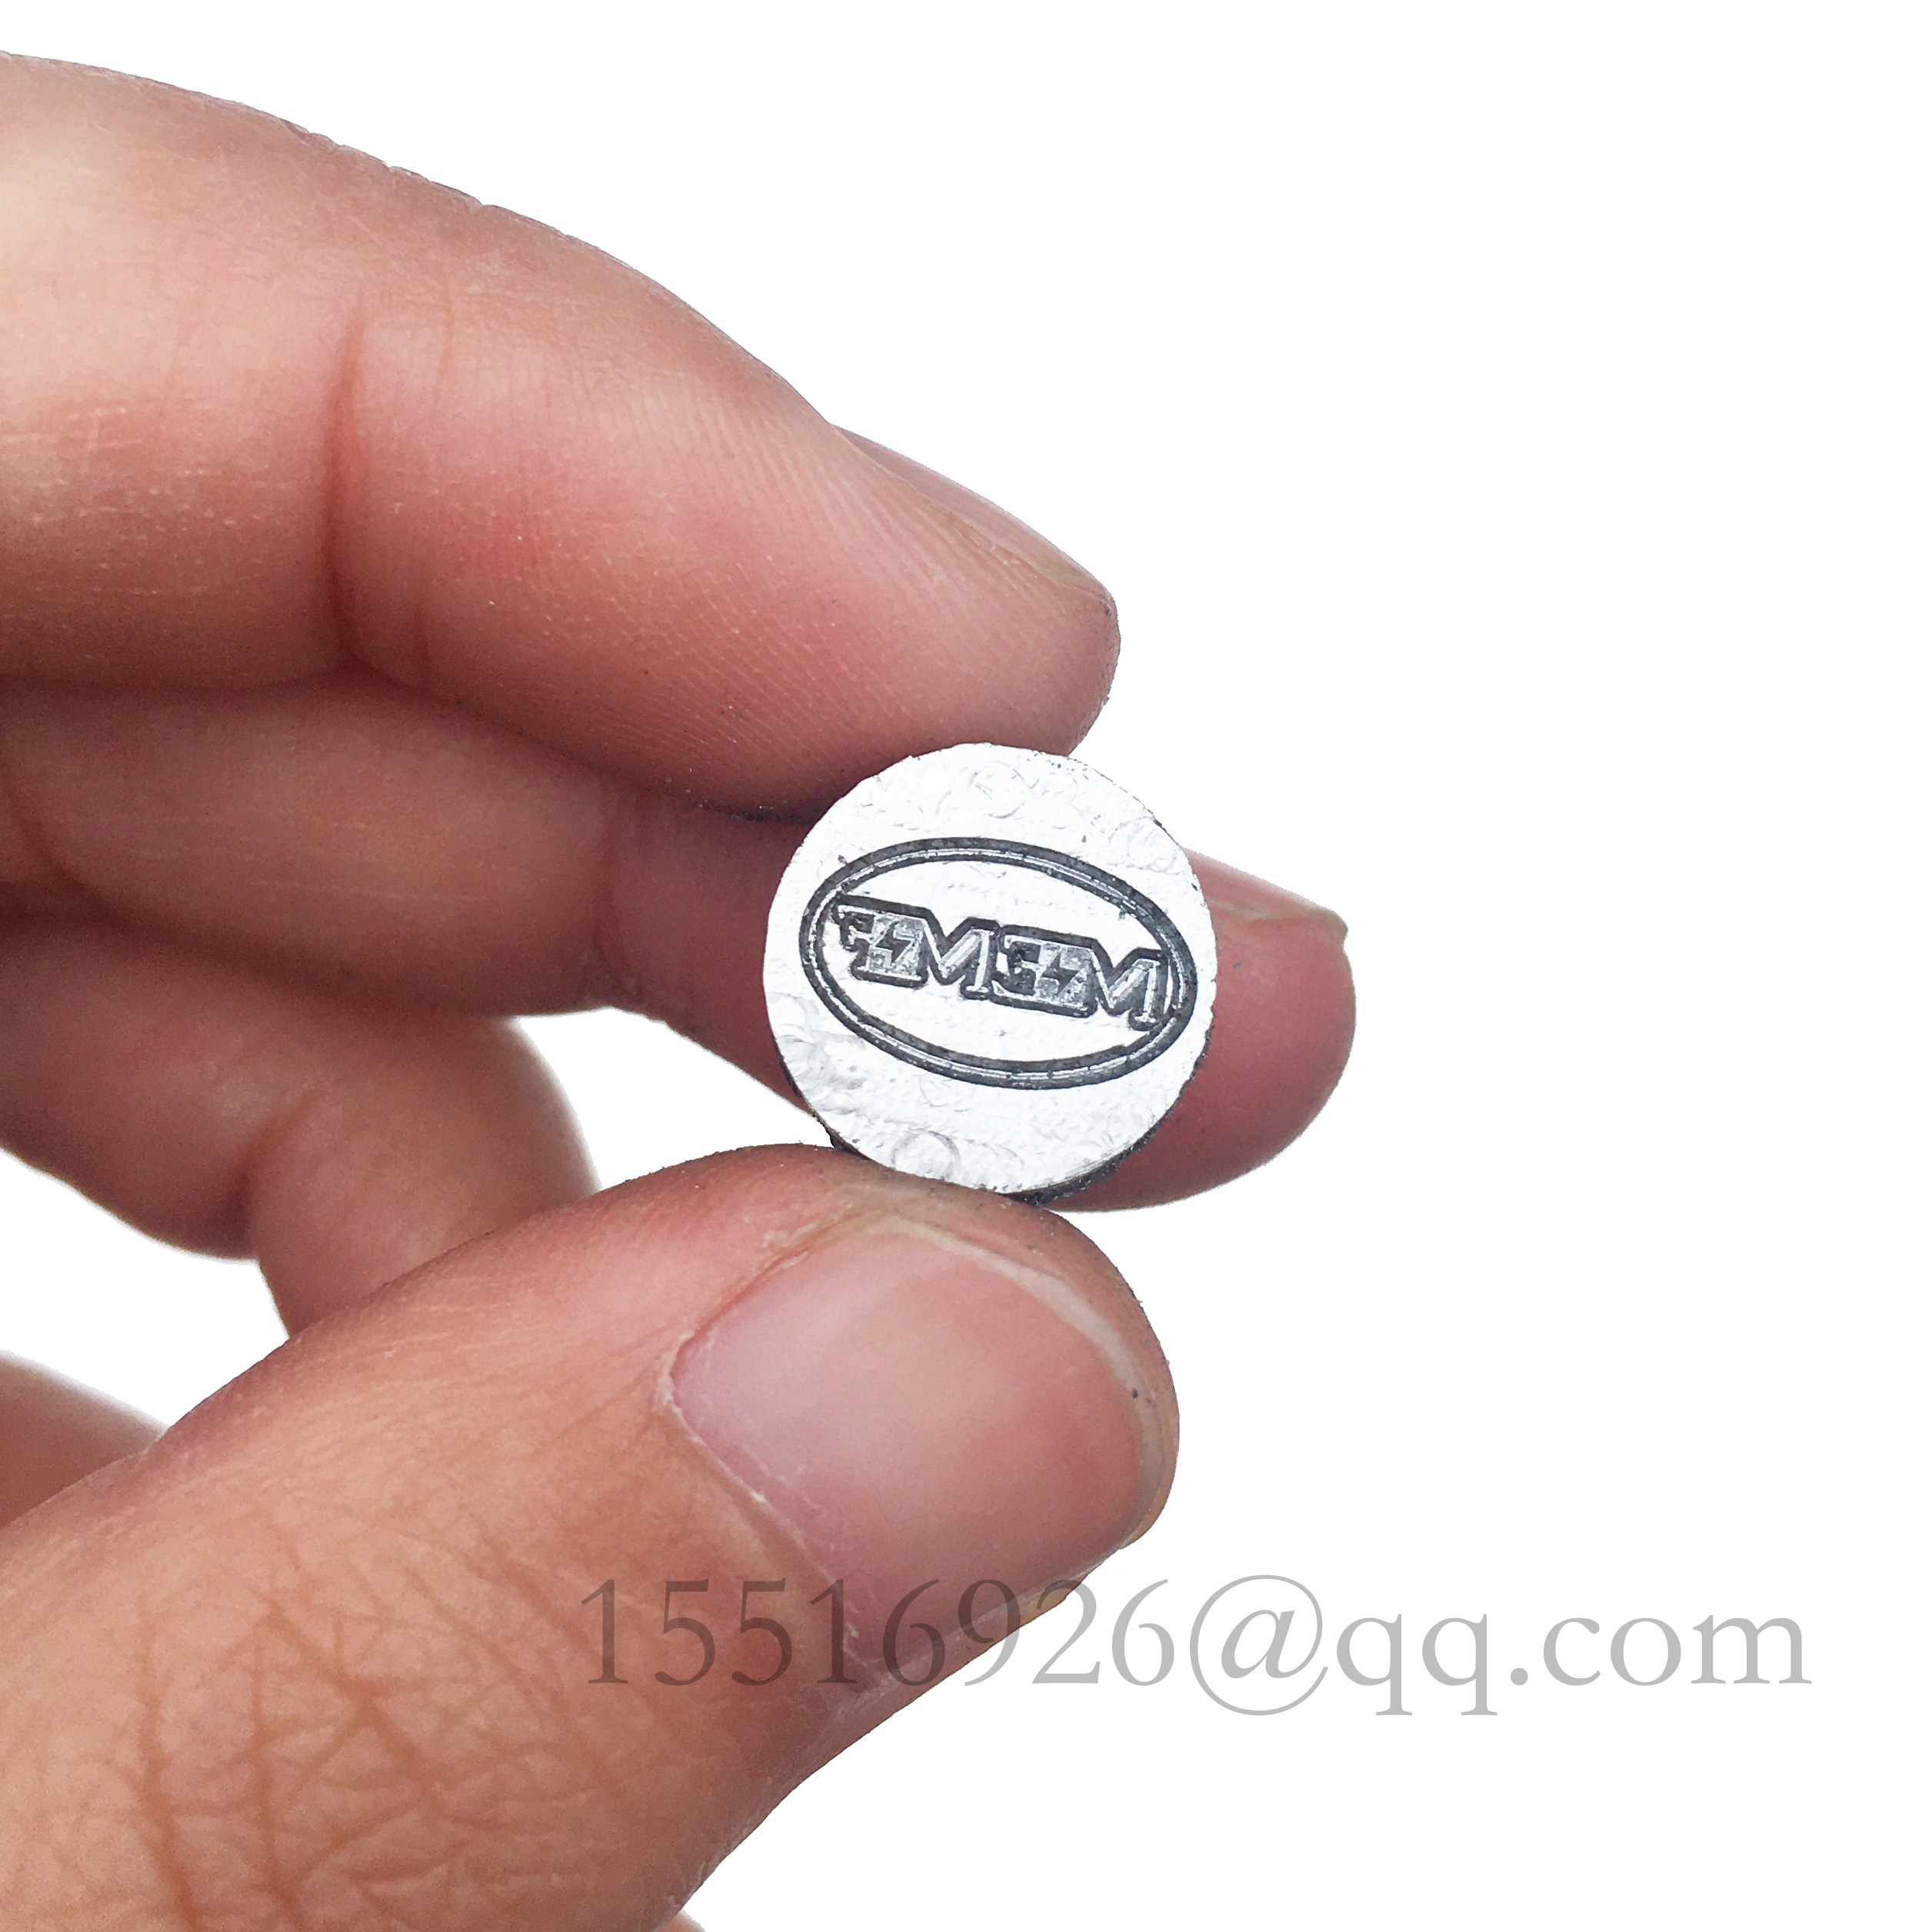 Memf Anti-fake Lead Seal ГМЦ Electronic Guard Engrave Custom Made Company Speciality Meter Security Safety Tag For ВХЧ Plier